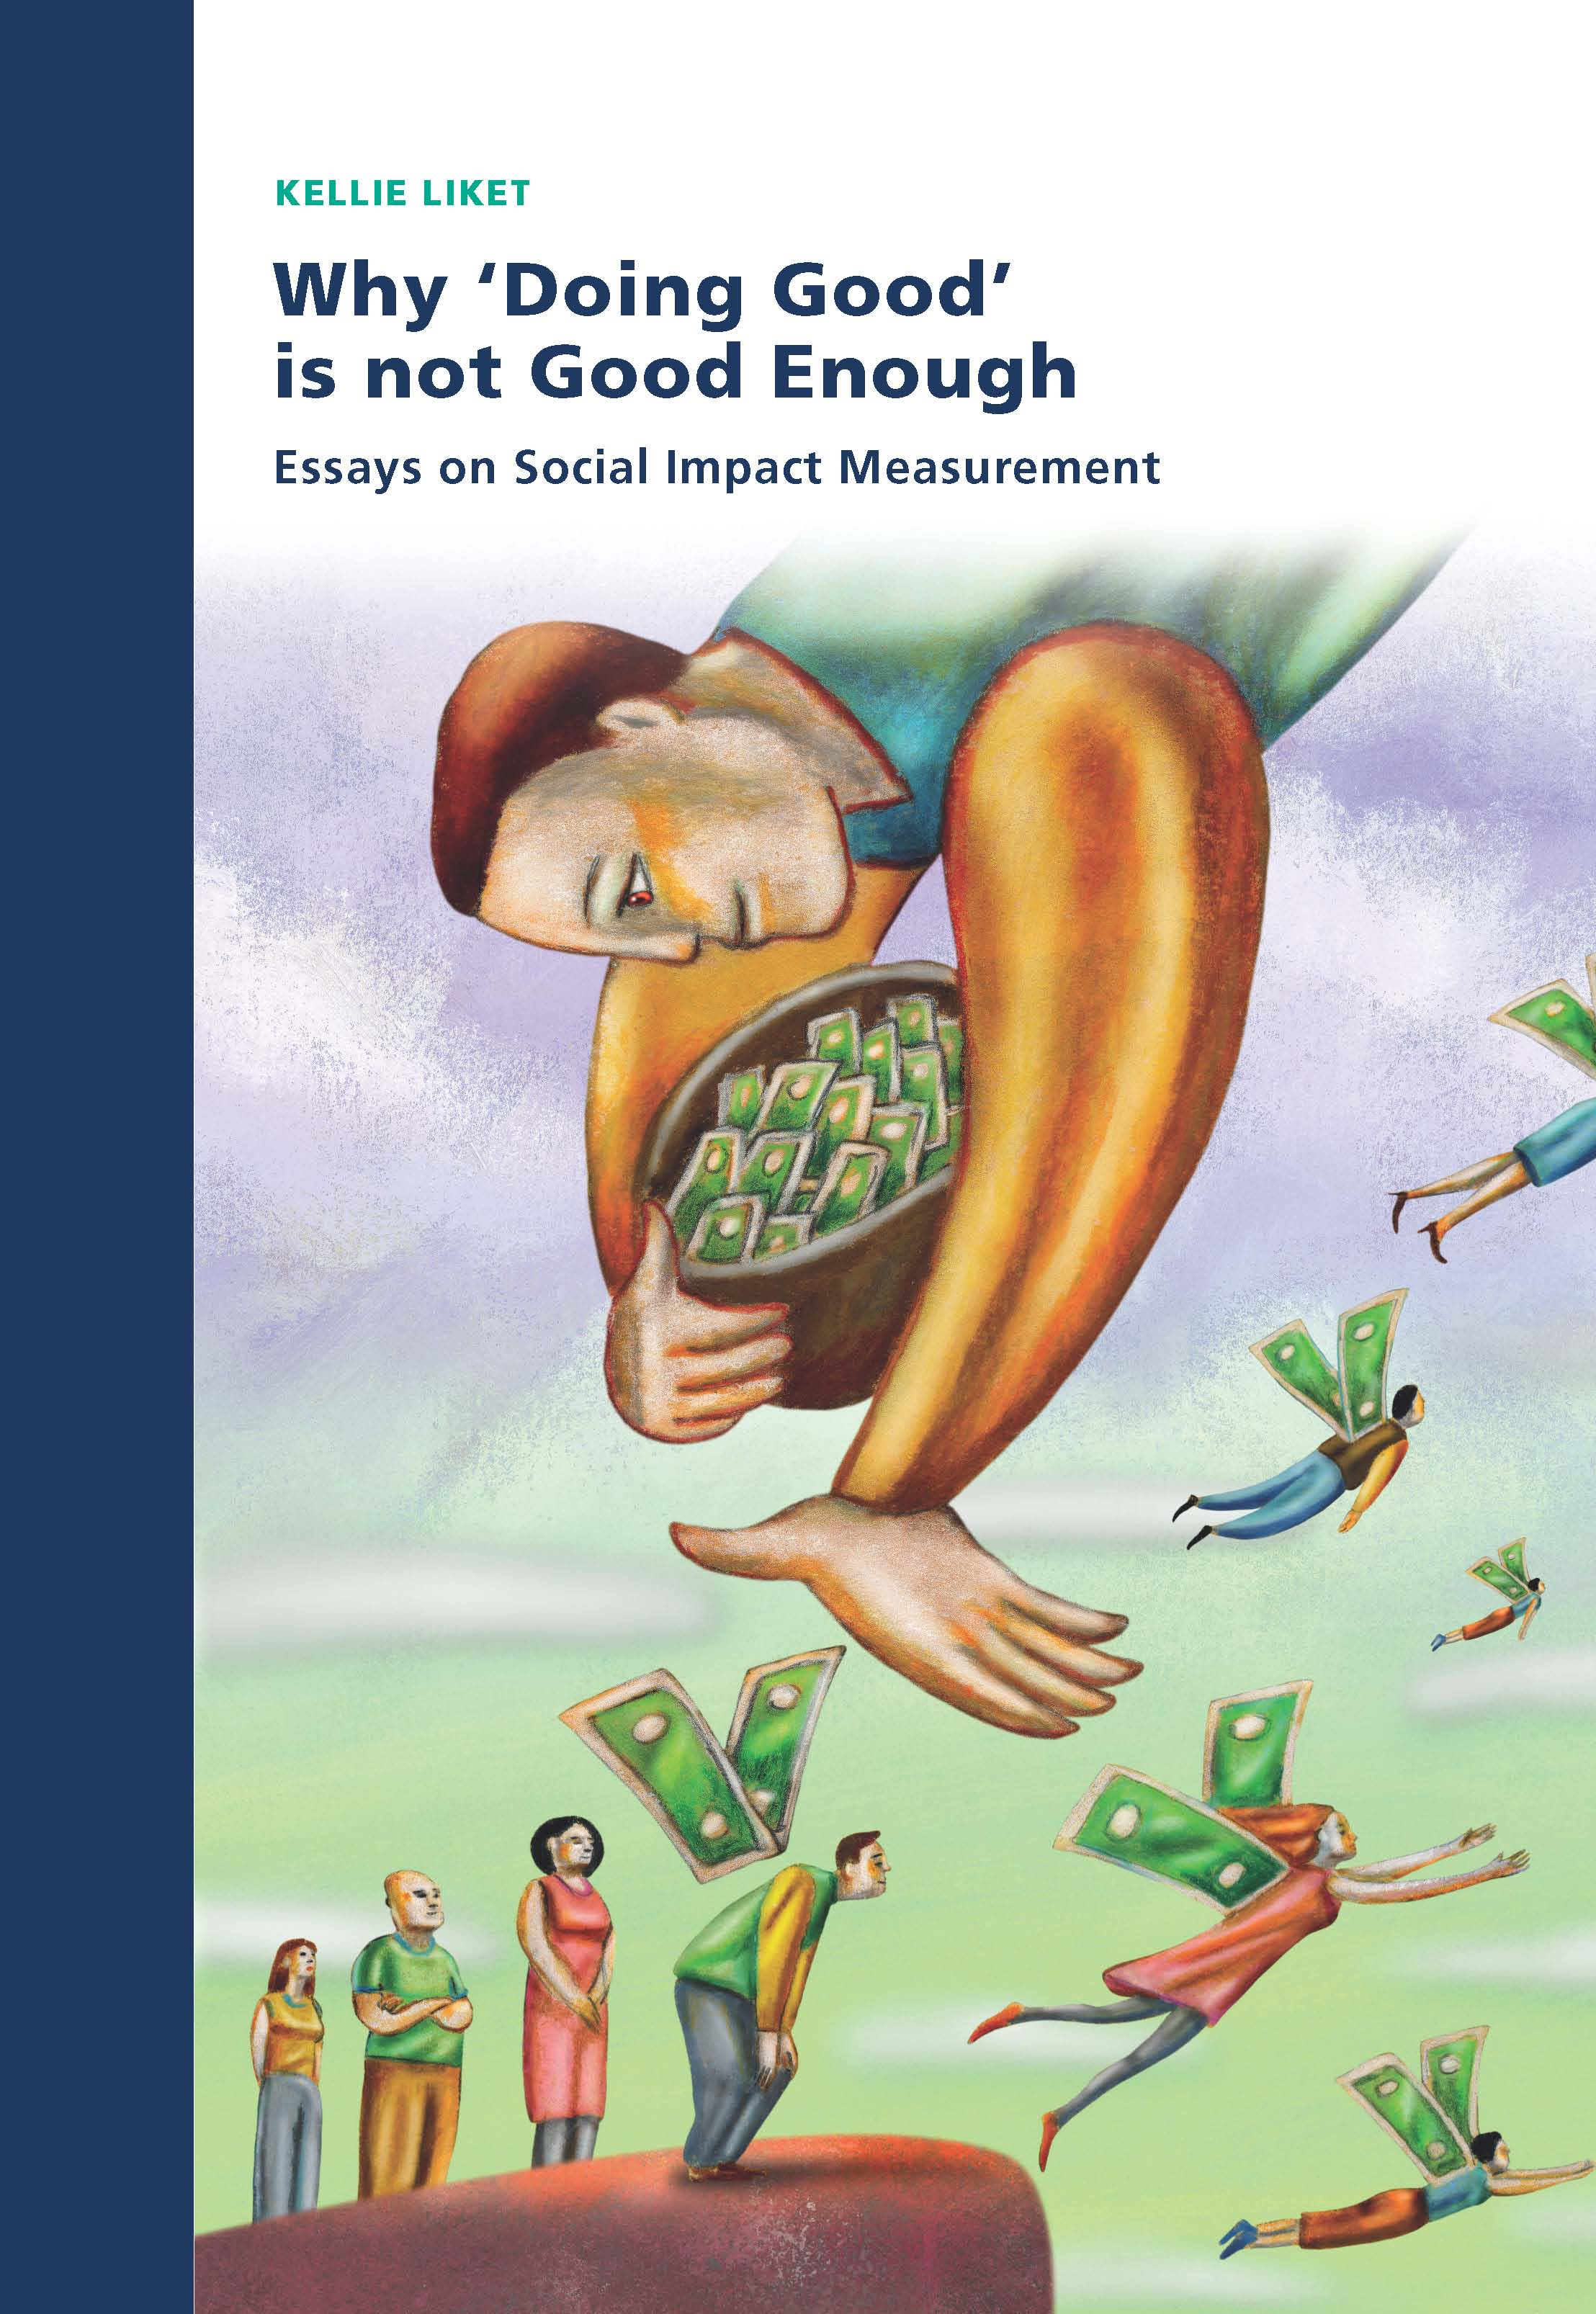 Why 'Doing Good' is Not Good Enough. Essays on Social Impact Measurement